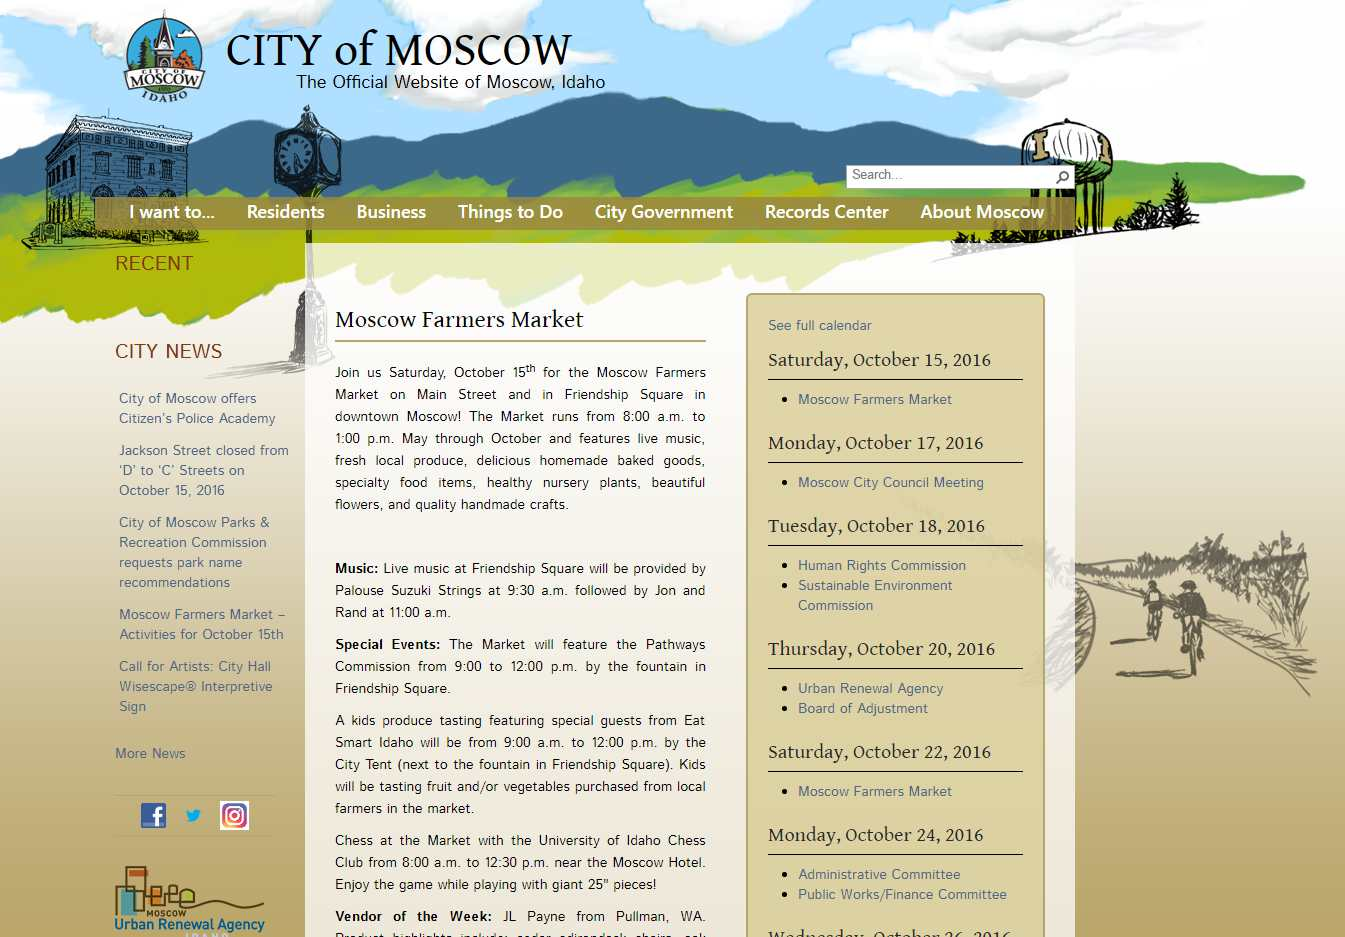 City of Moscow website graphics